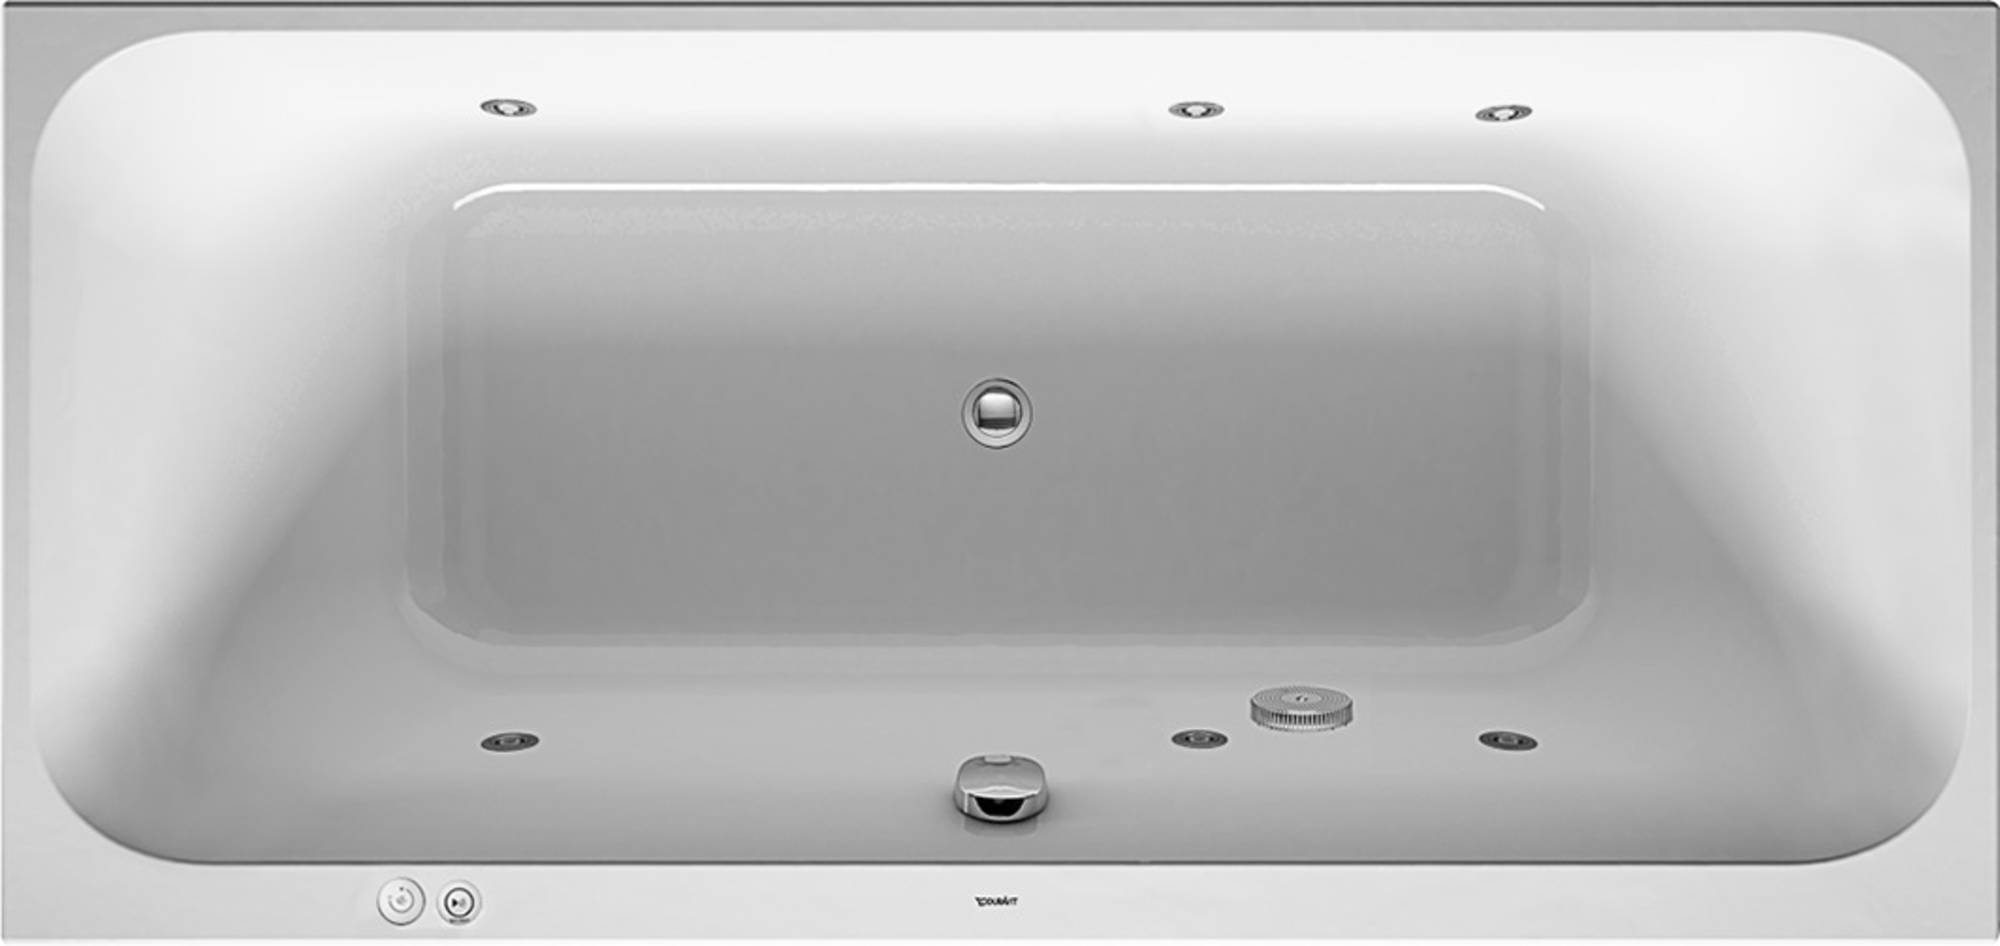 Duravit Happy D2 Systeembad 180 liter Acryl 190x90 cm Wit